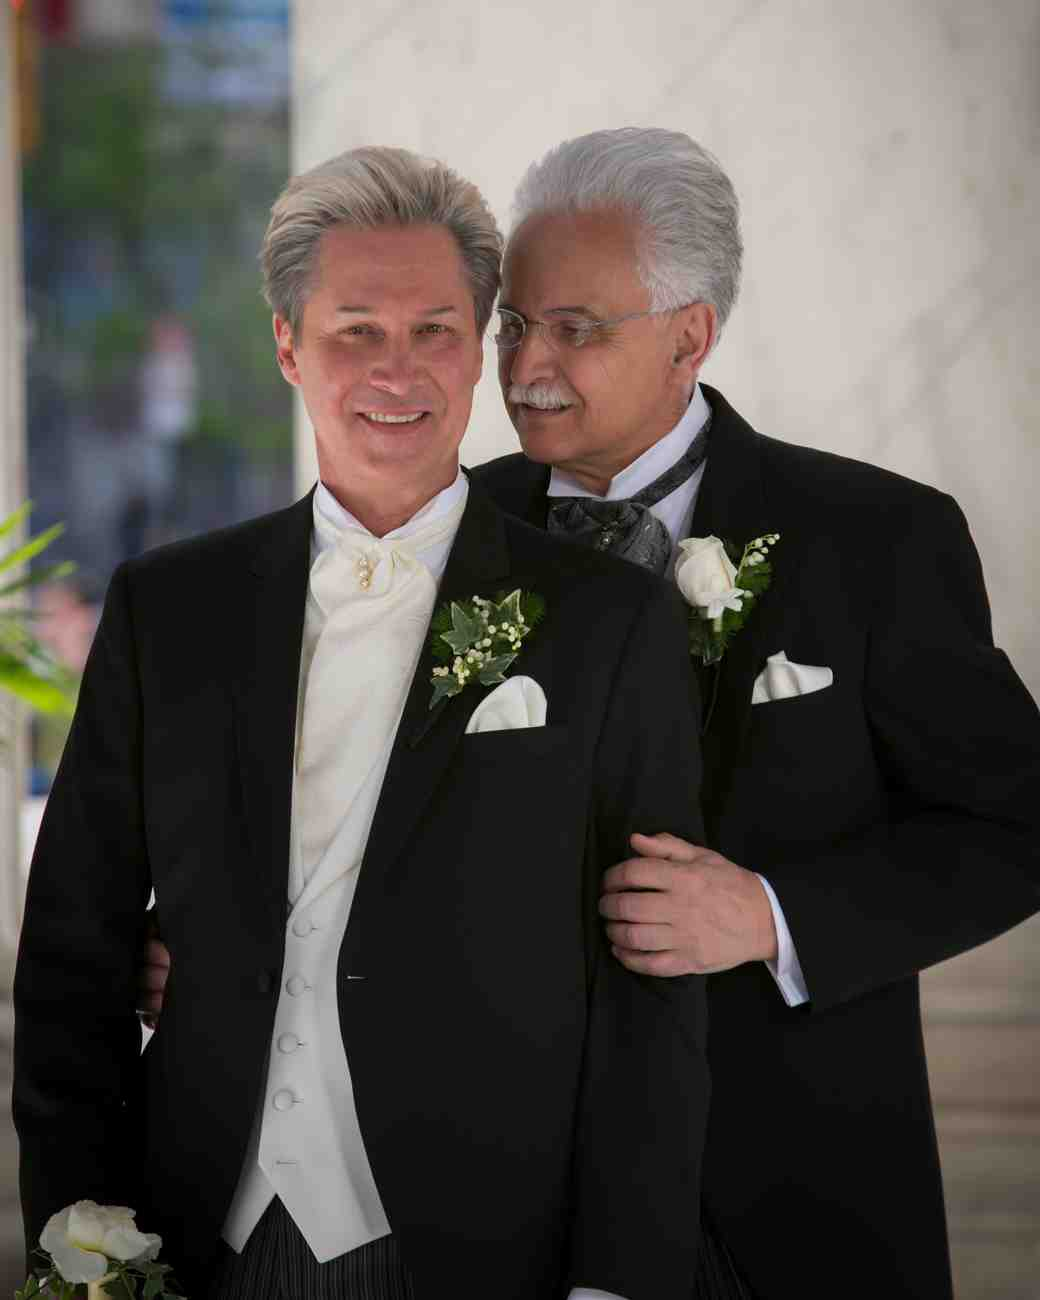 grooms standing together